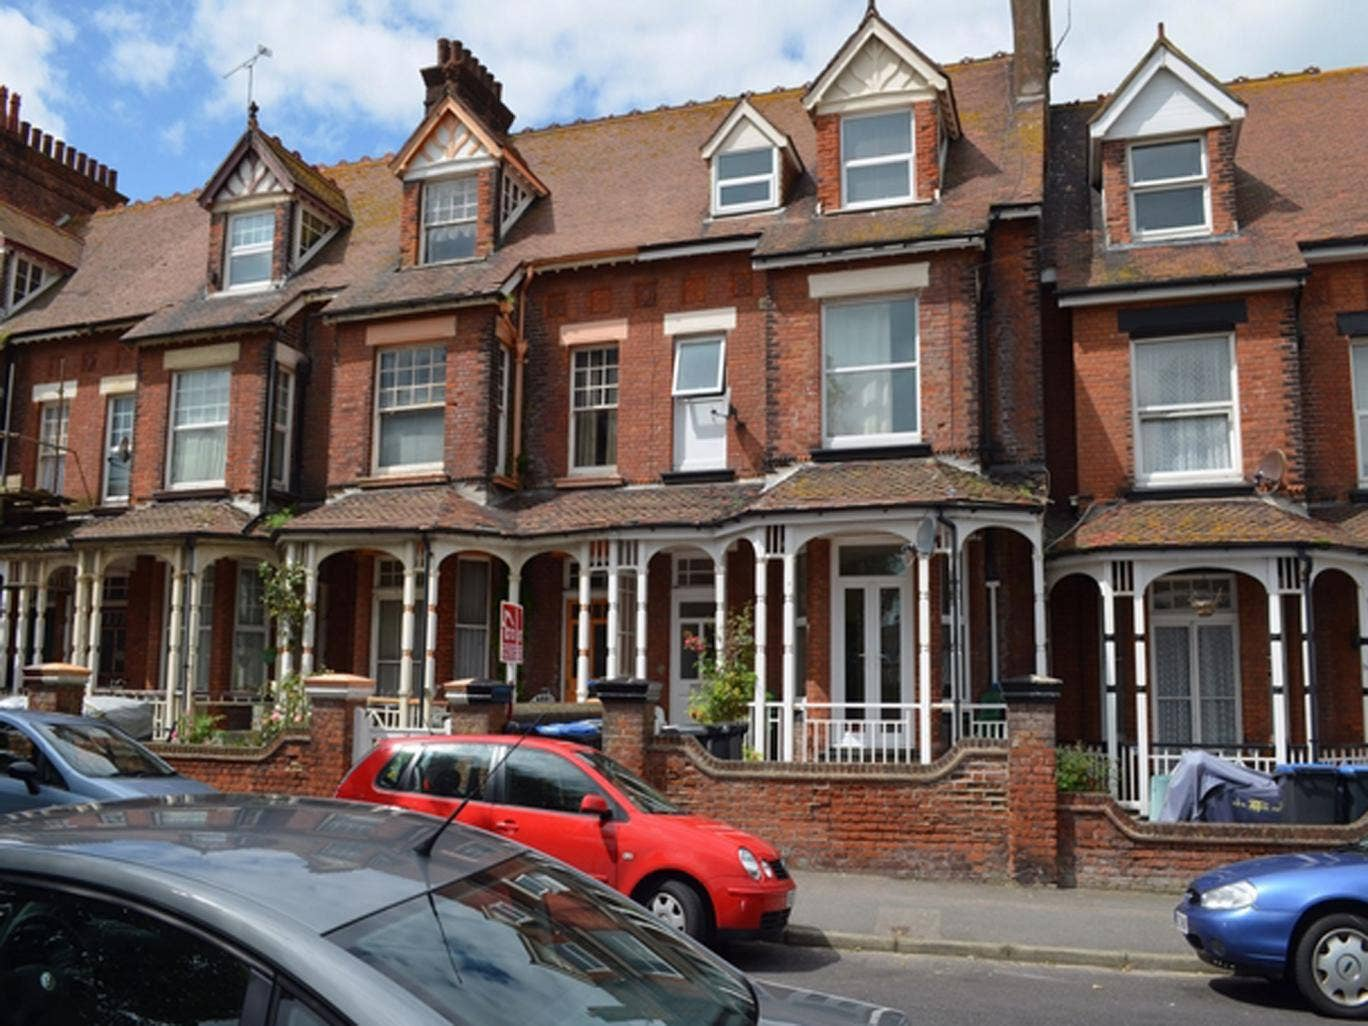 A two bedroom maisonette to rent in Westbrook Gardens, Margate, at £150 per week, on with New Space Margate.